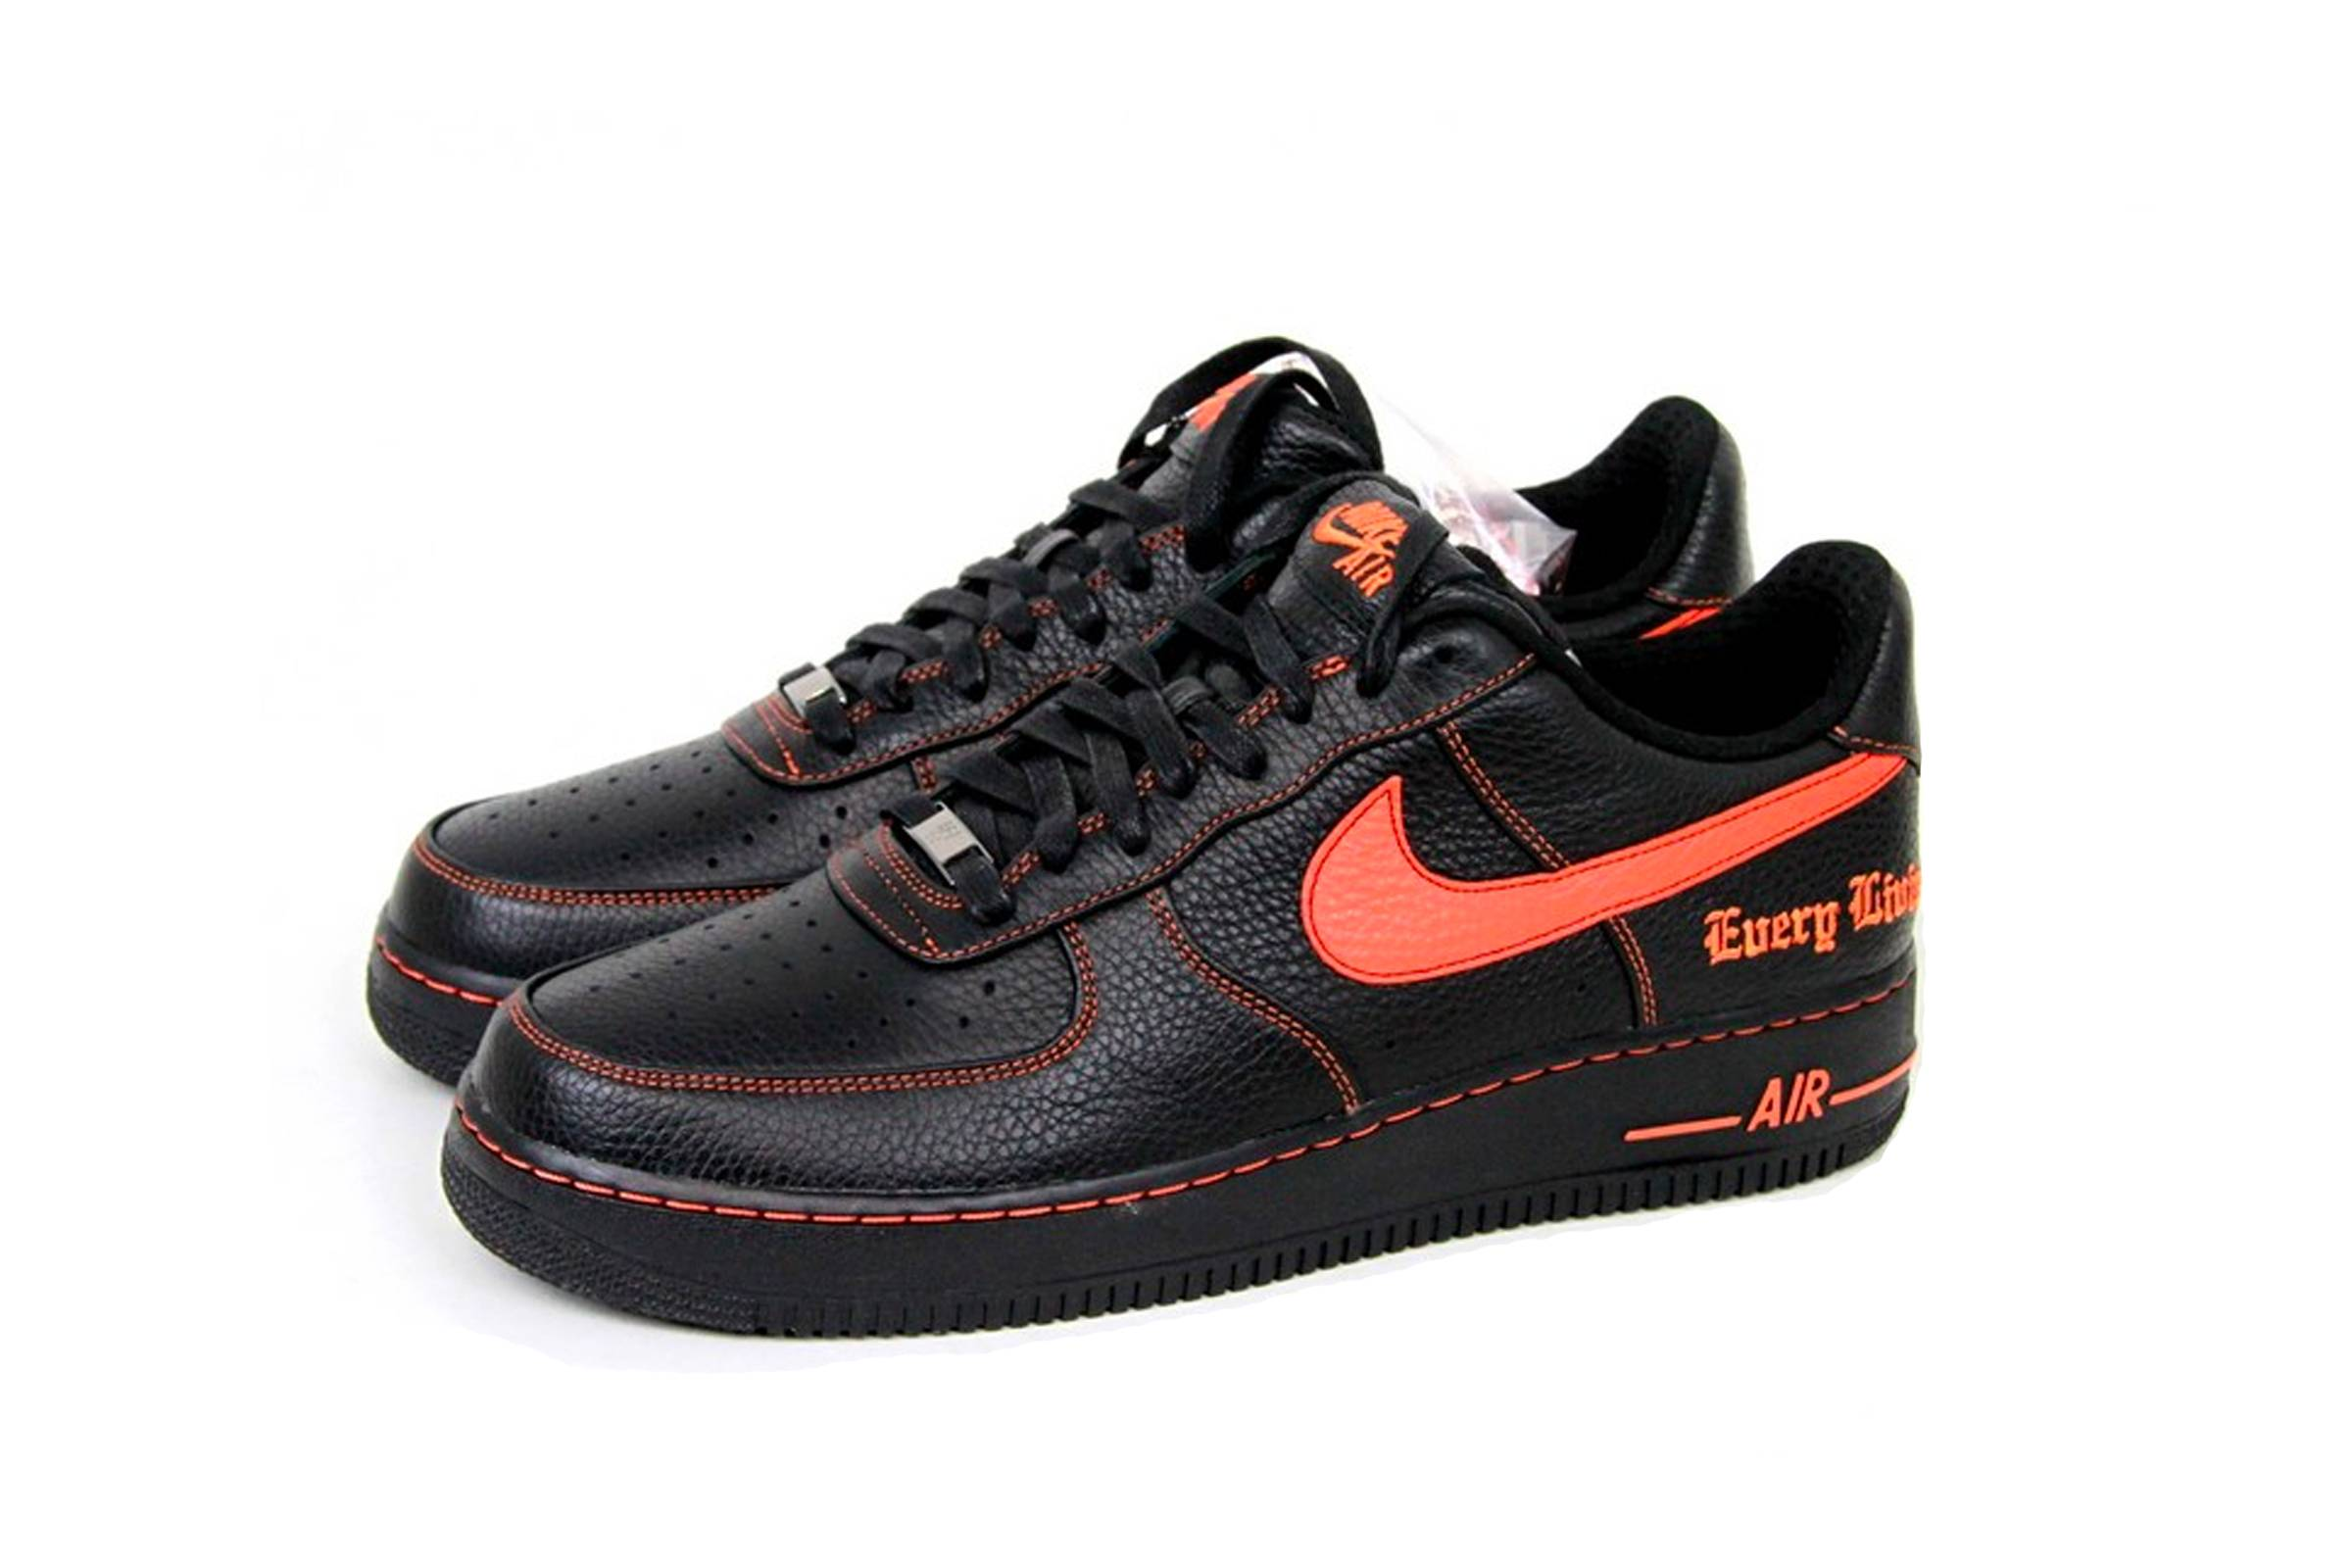 9. VLONE x Nike Air Force 1 Low